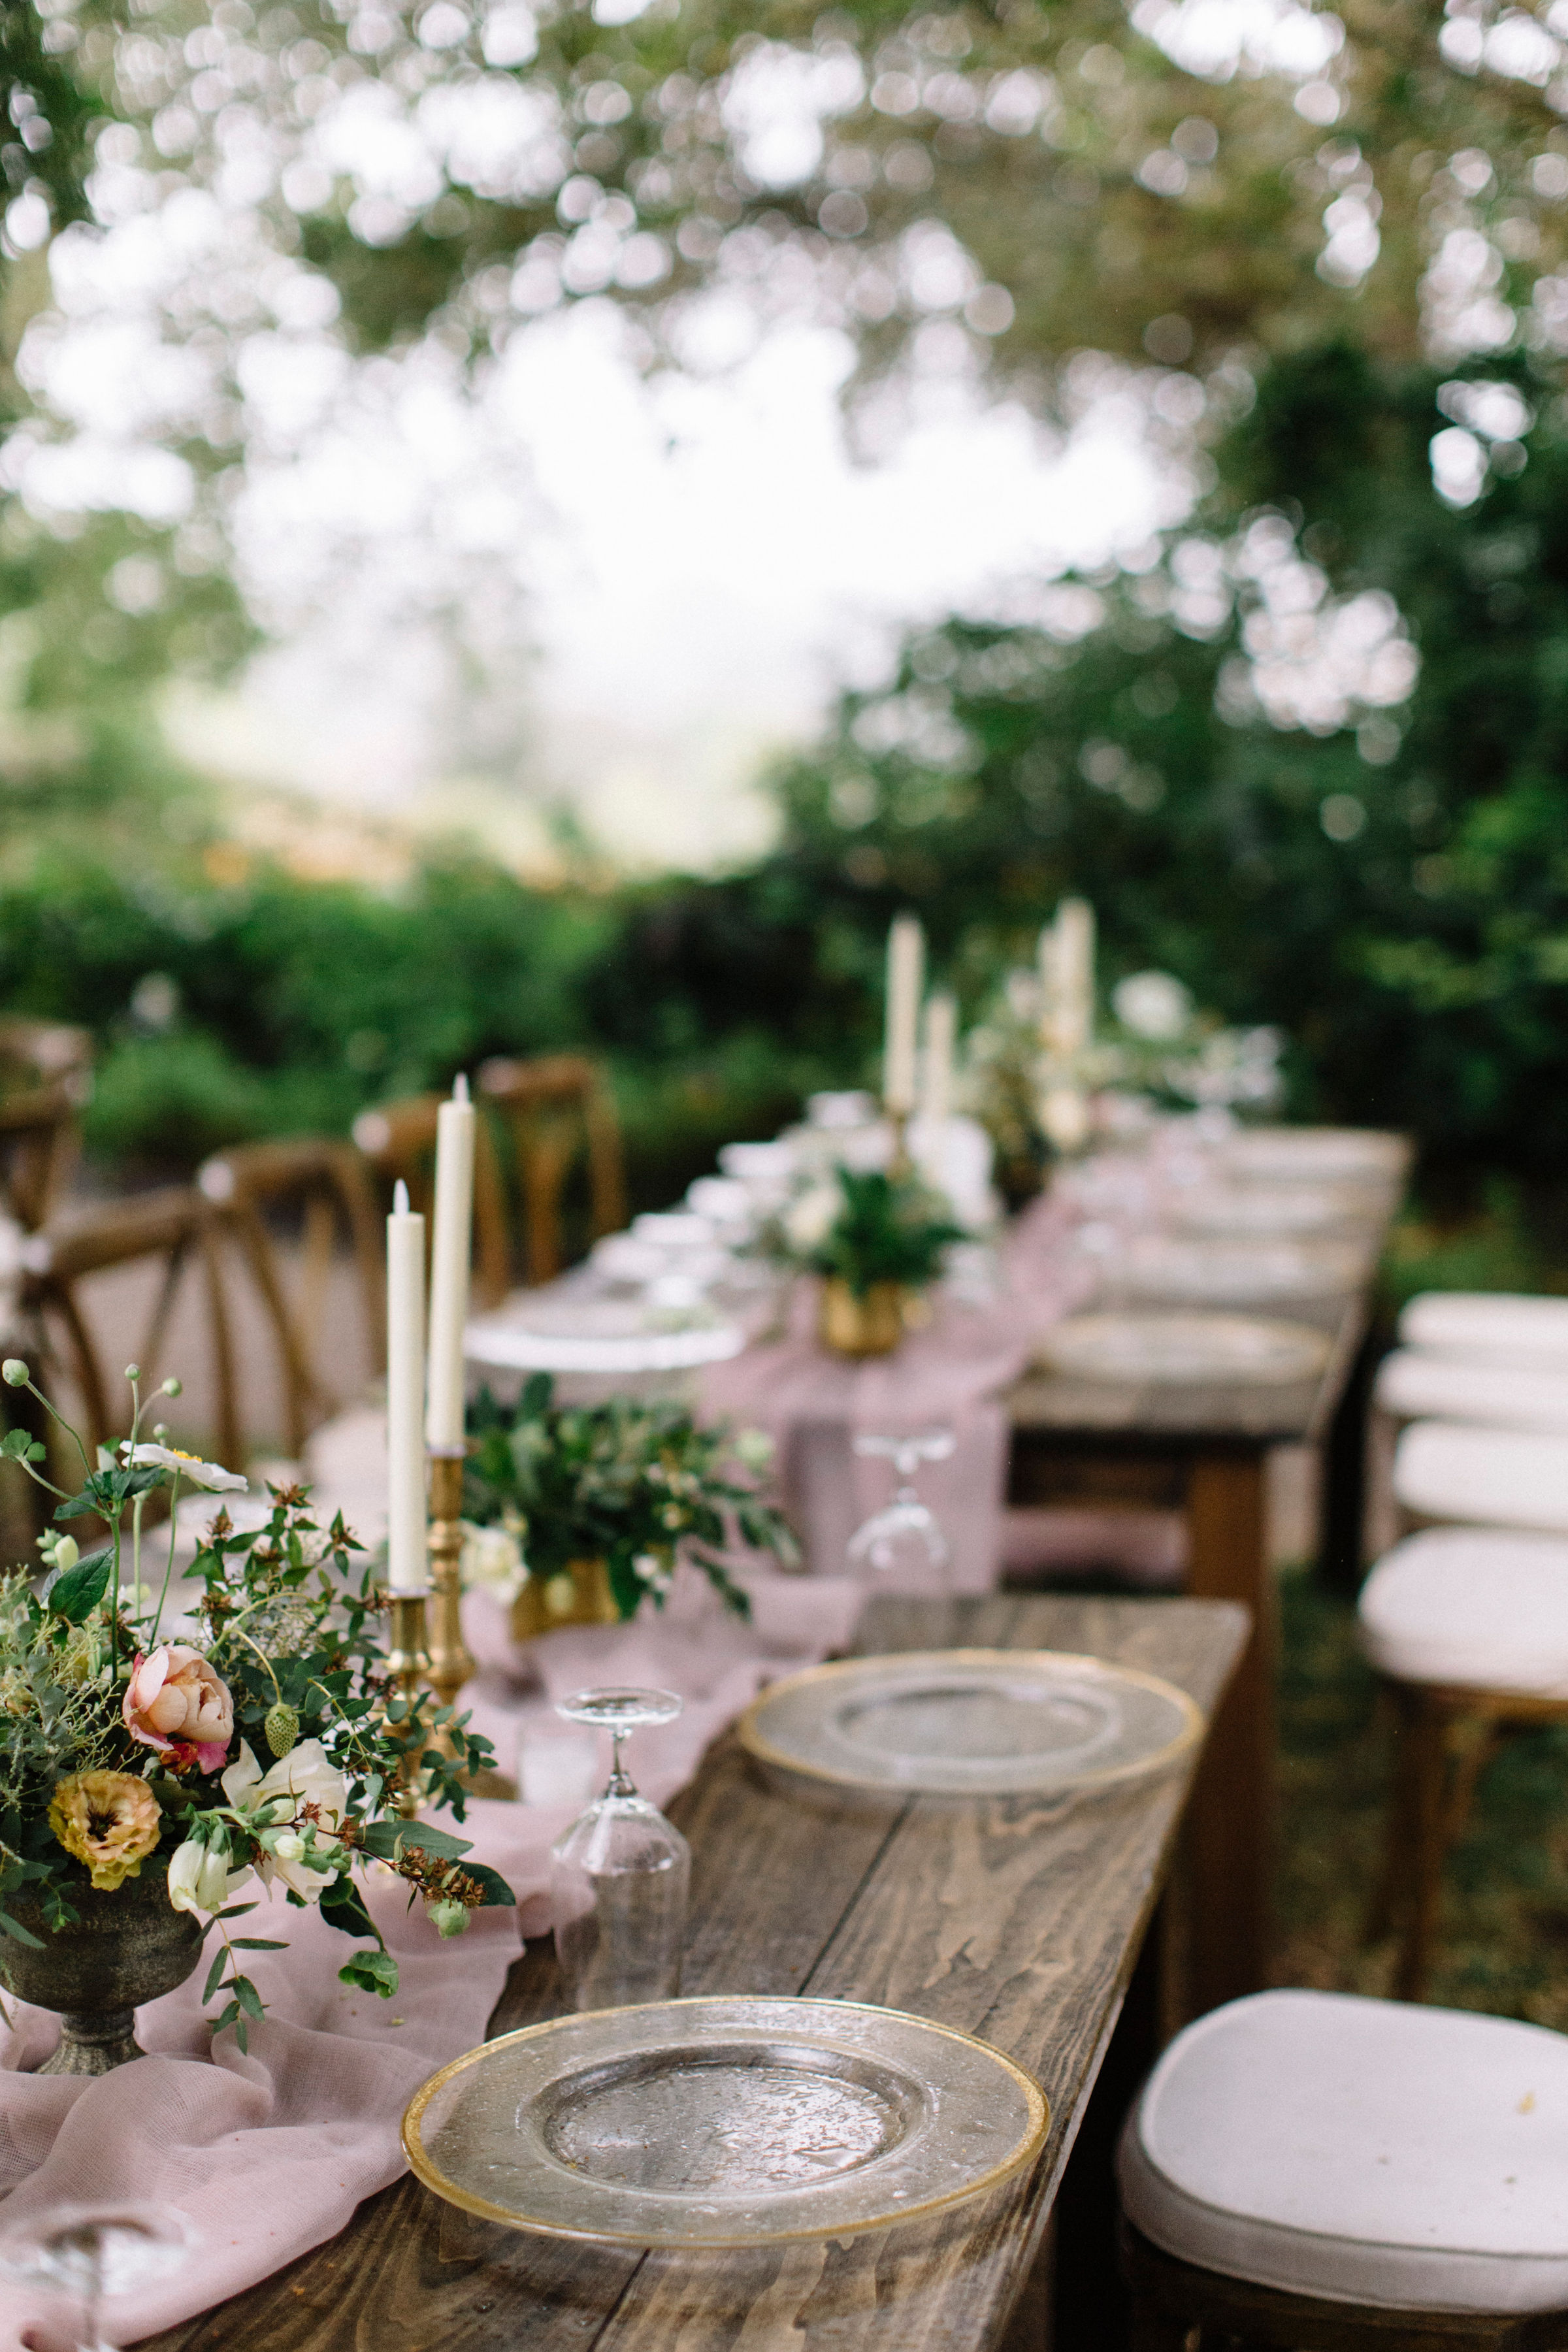 Wild and garden inspired wedding table centerpieces with taper candles and vintage glassware by Venn Floral photographed by Lucille Lawrence in Healdsburg, California.